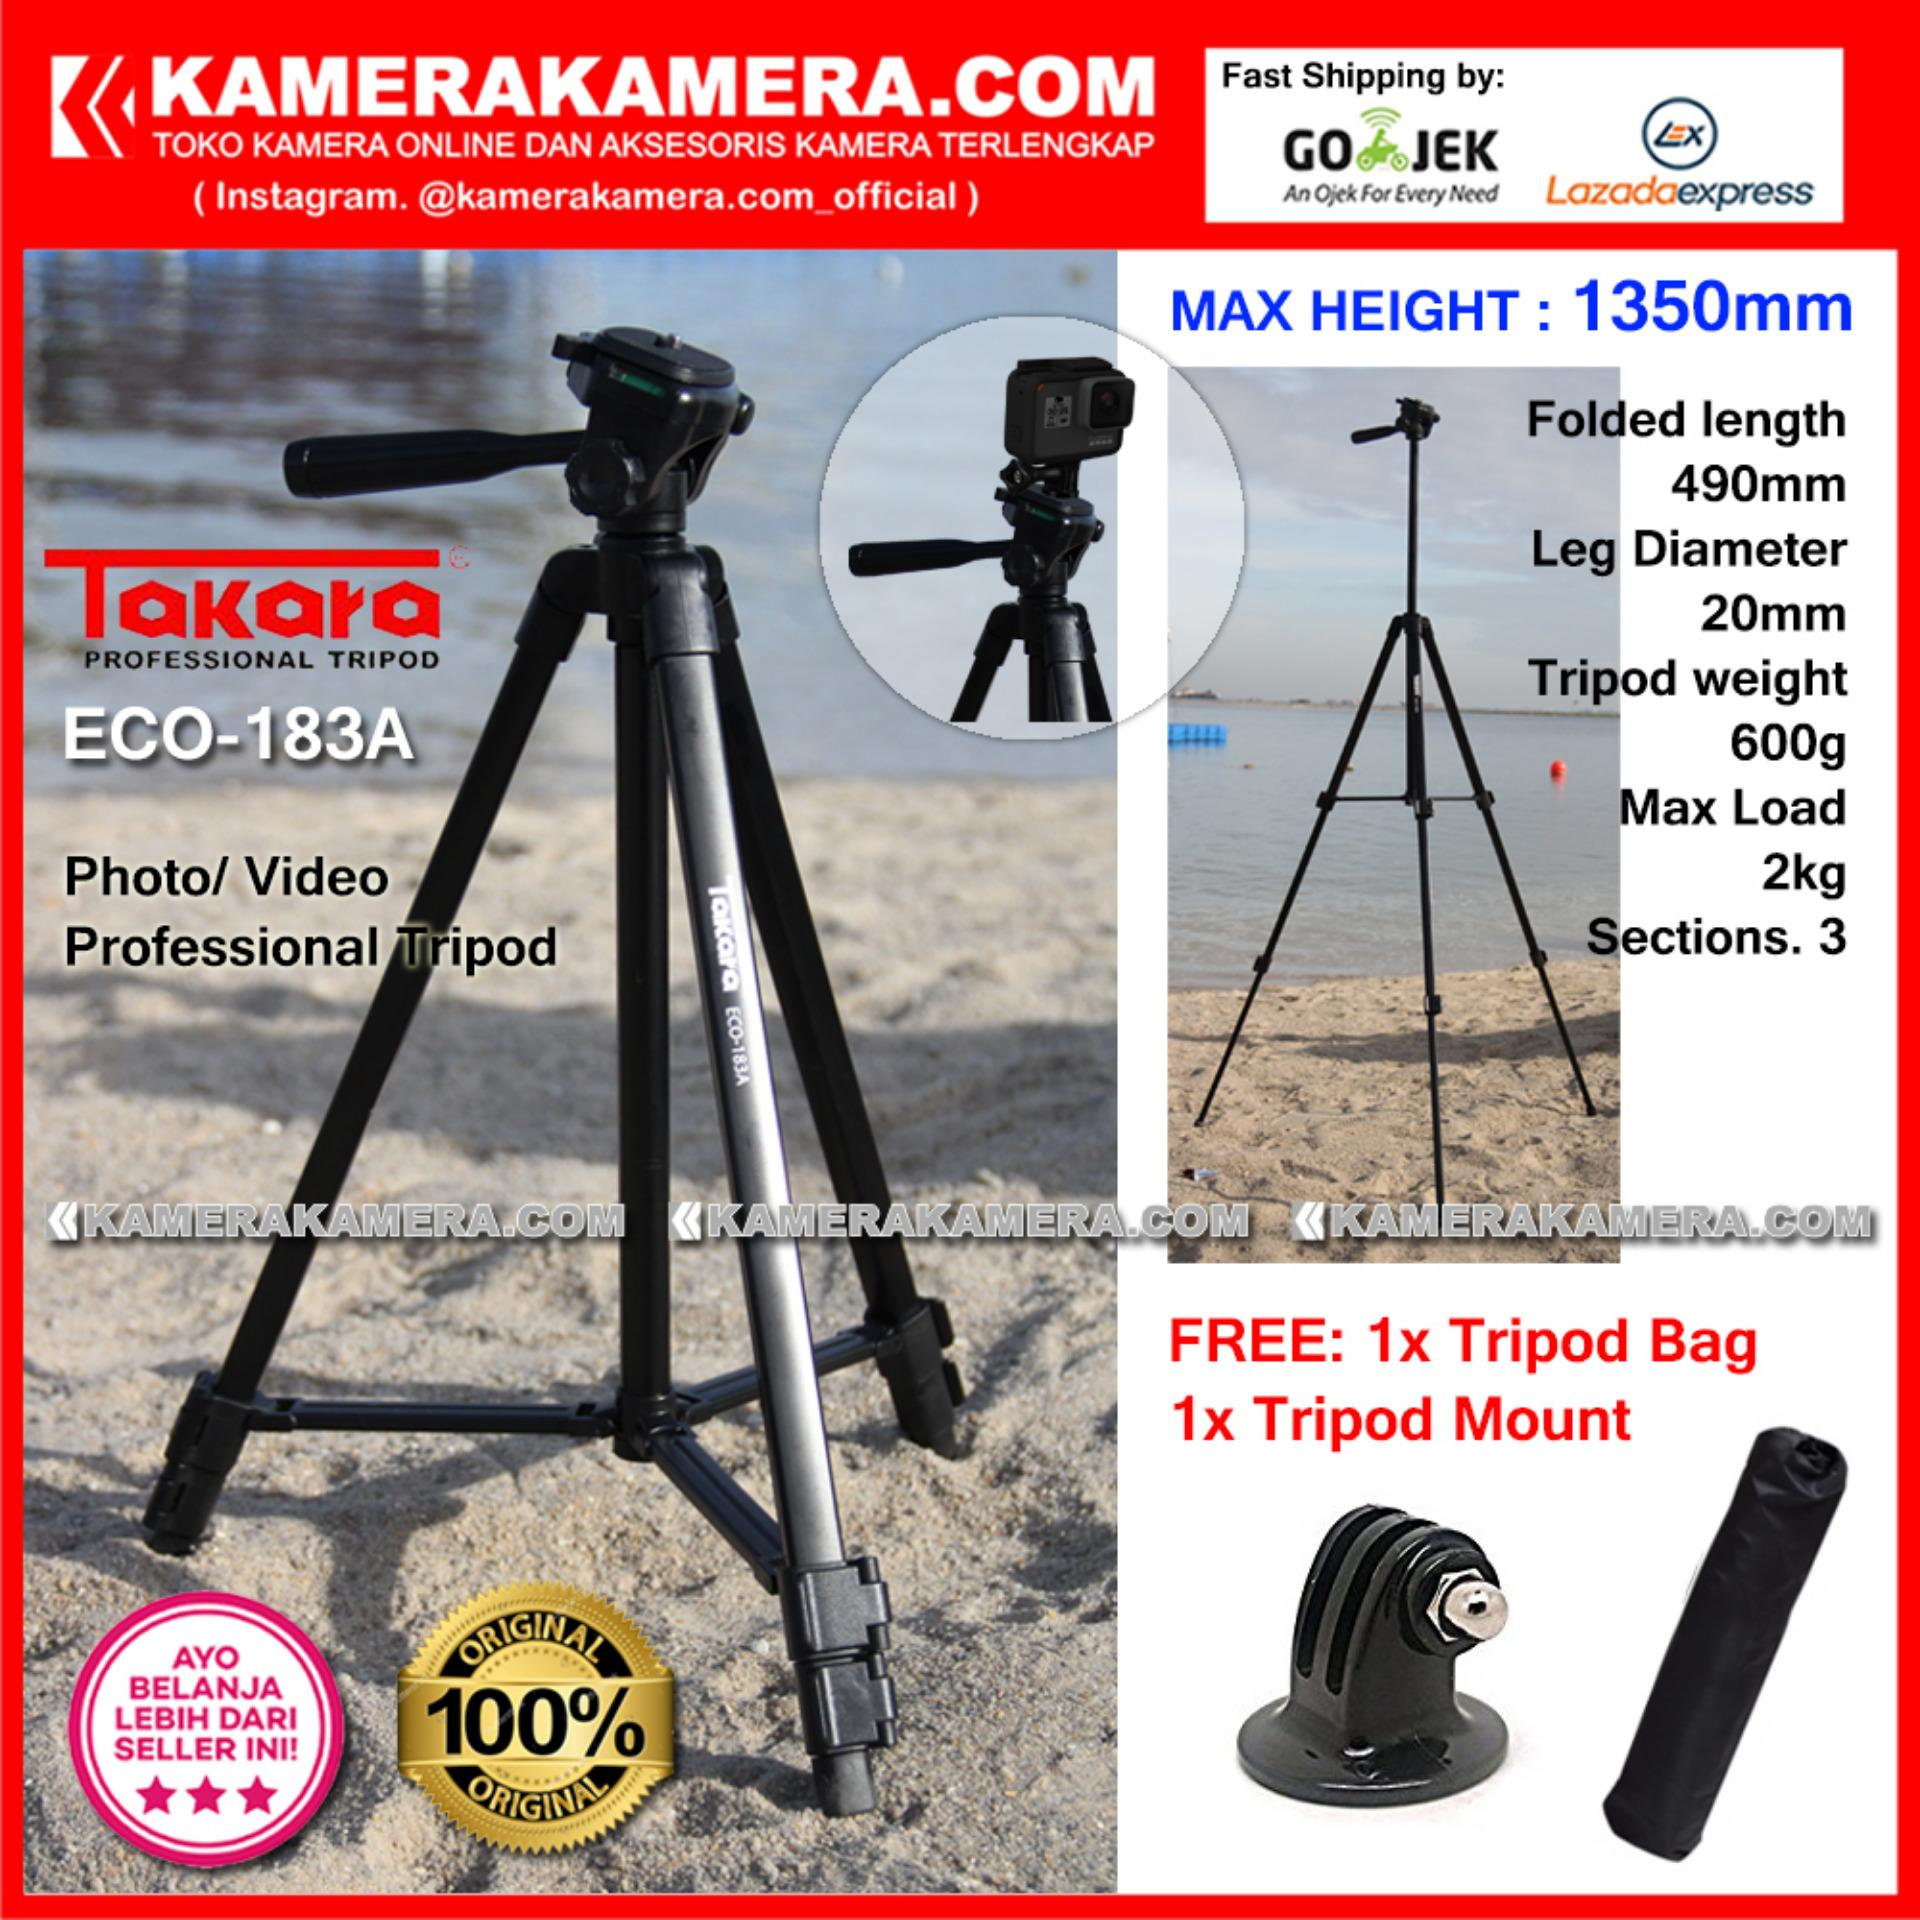 TAKARA ECO-183A Photo / Video Professional Tripod ECO 183A - Max Height 1350mm Free Tripod Bag + Tripod Mount for DSLR Mirrorless Camera Canon Nikon Sony Fujifilm Panasonic and Action Camera GoPro Brica Xiaomi Yi Kogan and SmartPhone iPhone Samsung